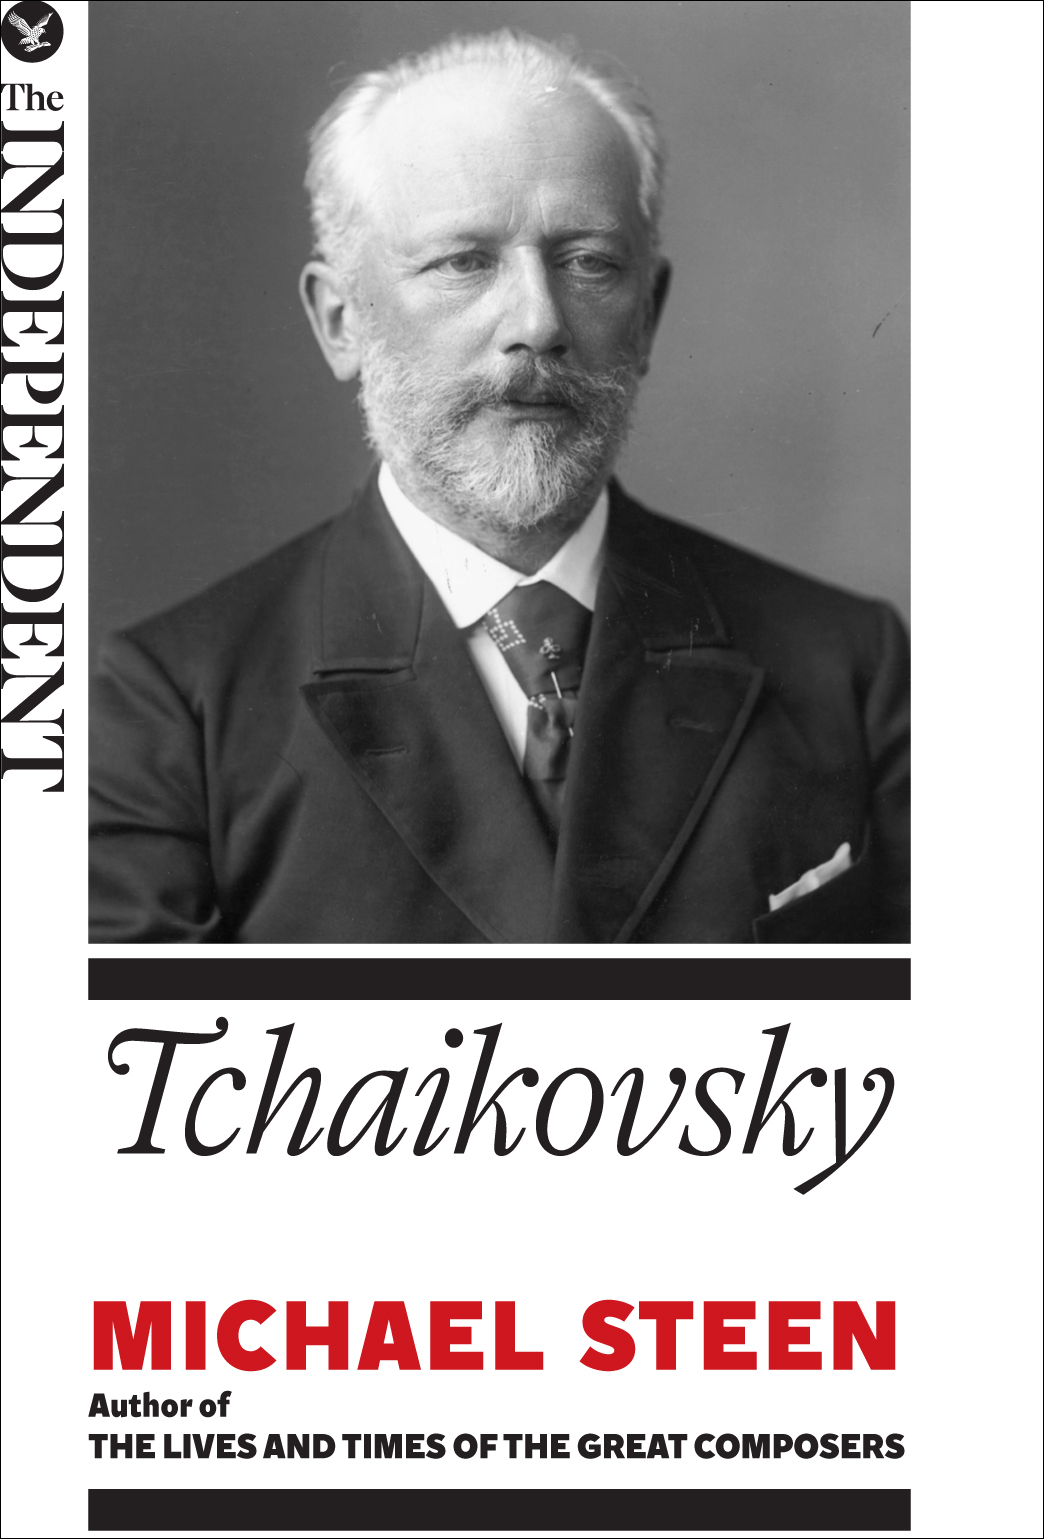 Tchaikovsky: The Great Composers